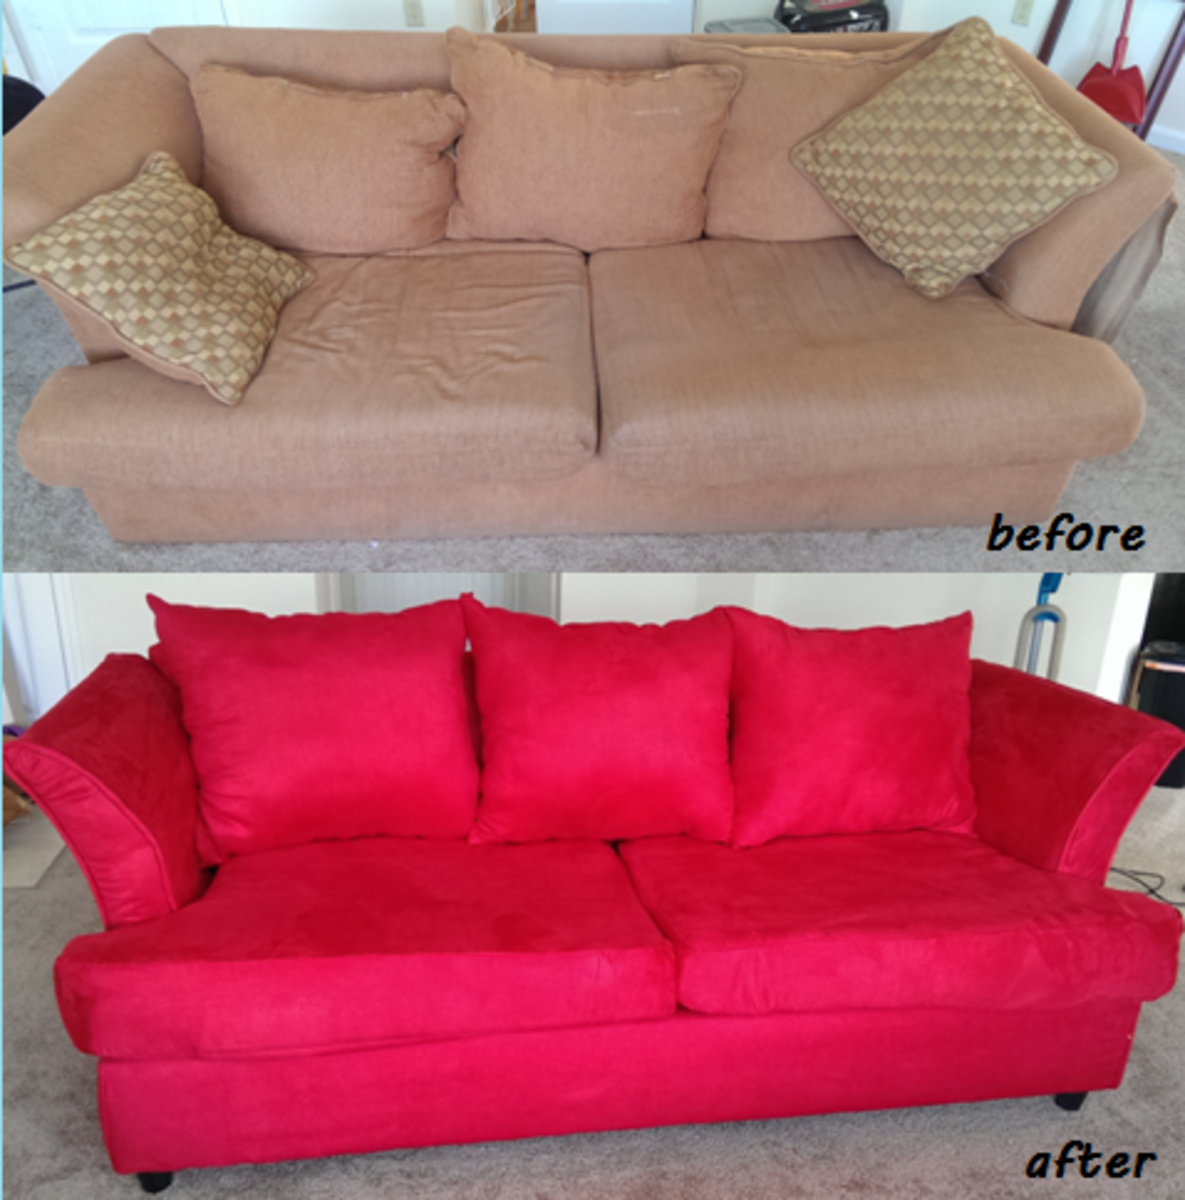 A Beginner's Guide to Reupholstering a Couch, Step by Step